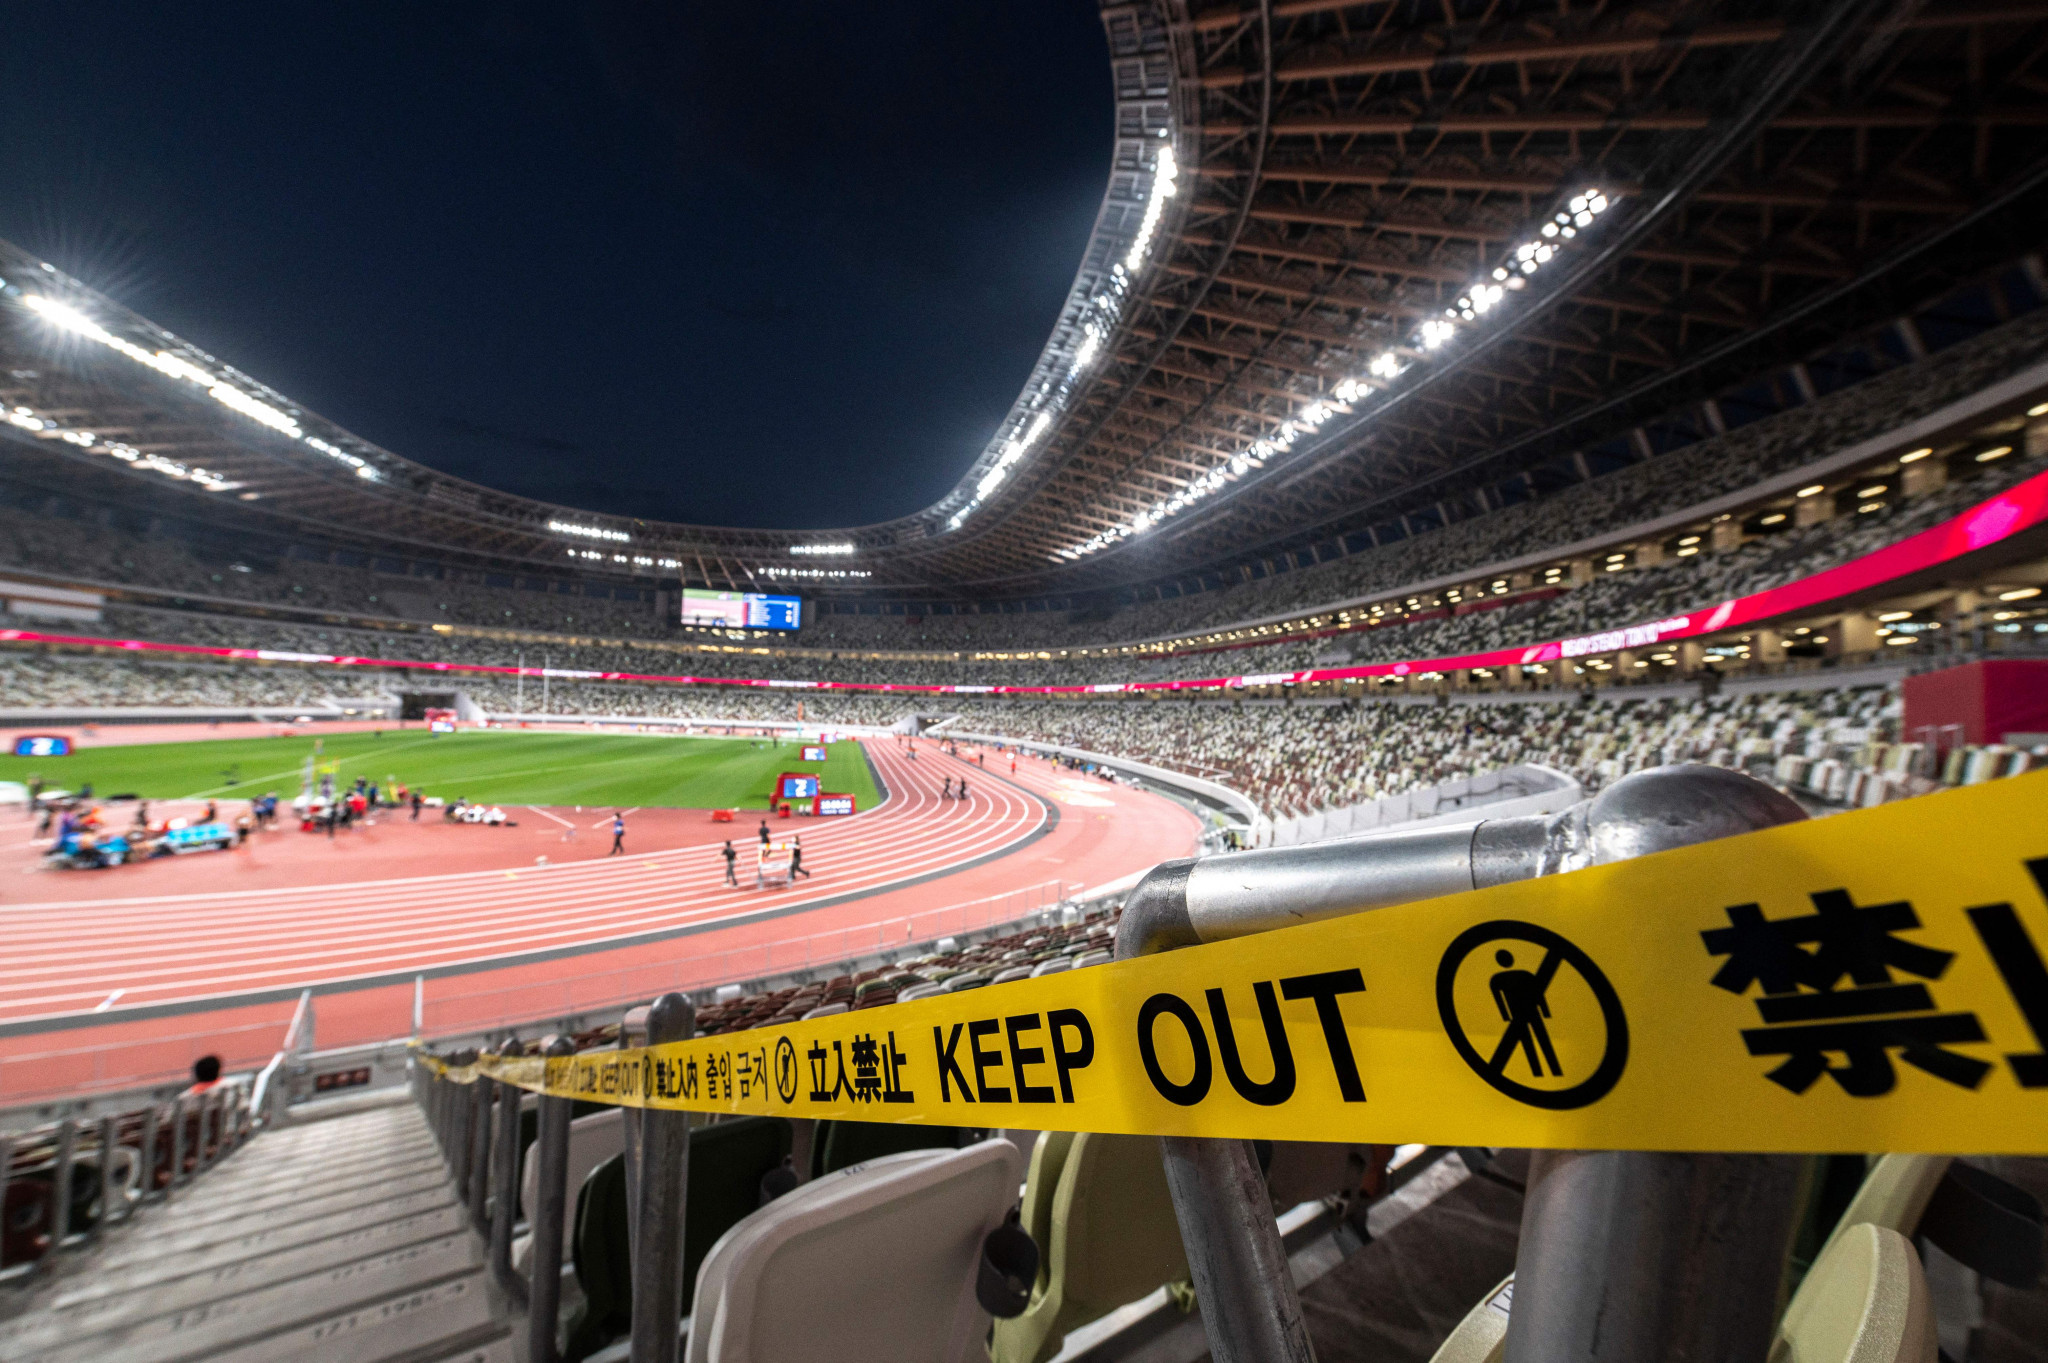 Tokyo 2020 to stage Para athletics test event at spectator-less Olympic Stadium